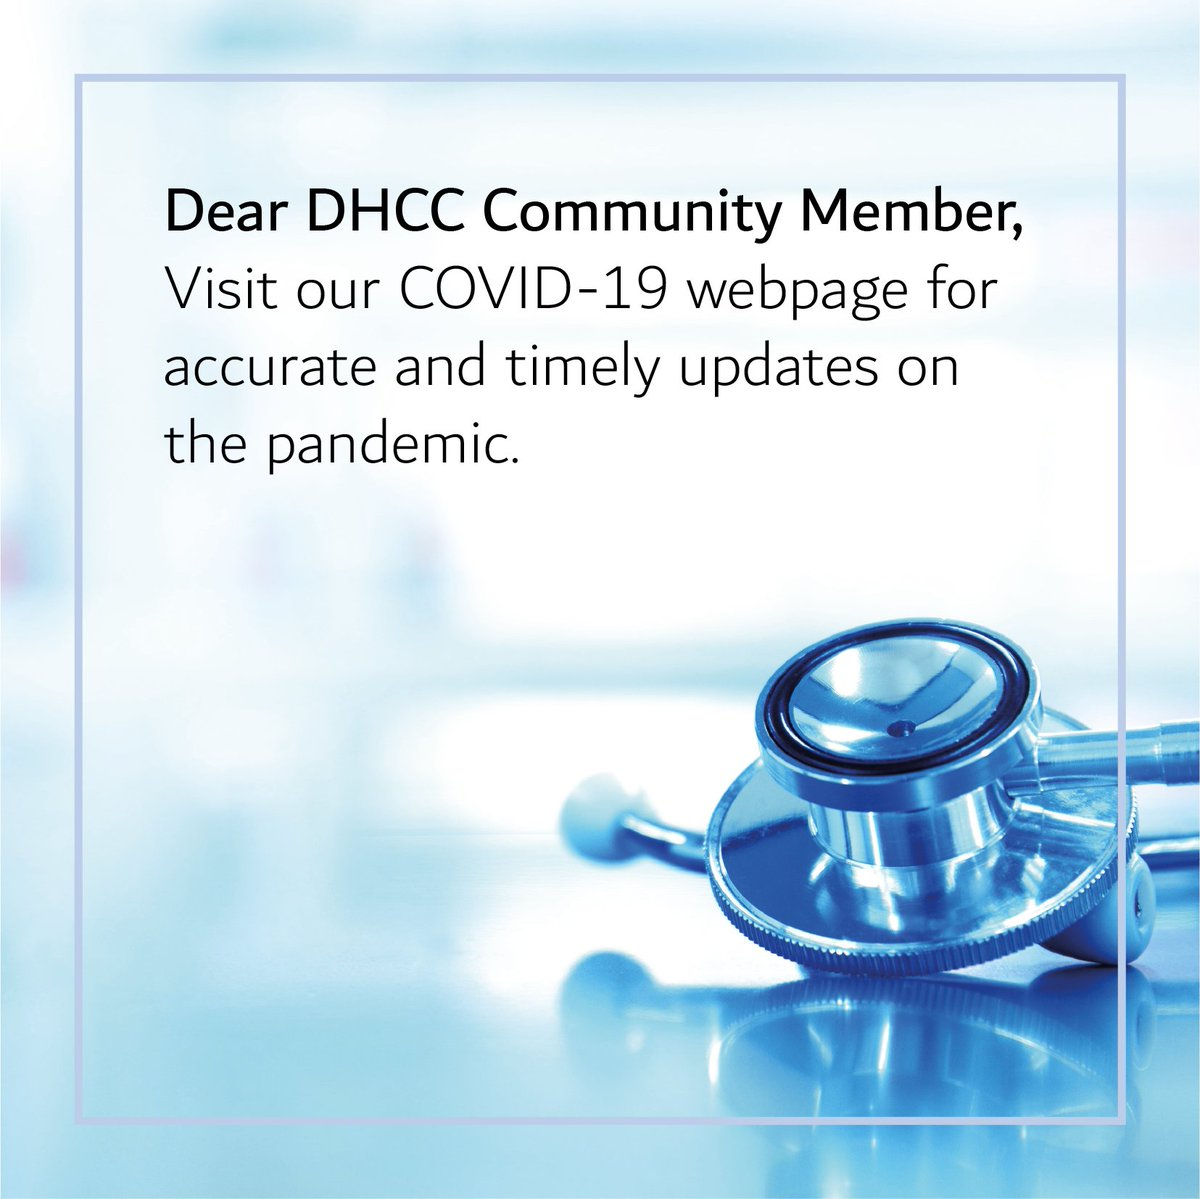 To support our community members in accessing accurate and timely information and policy updates on the evolving COVID-19 pandemic, DHCA has set up a specialized webpage.  Please click the link: https://lnkd.in/fTs7vY4  #DHCC #Communityofchoice #covid_19 #corona #stayinformedpic.twitter.com/dUjyAwhtRy